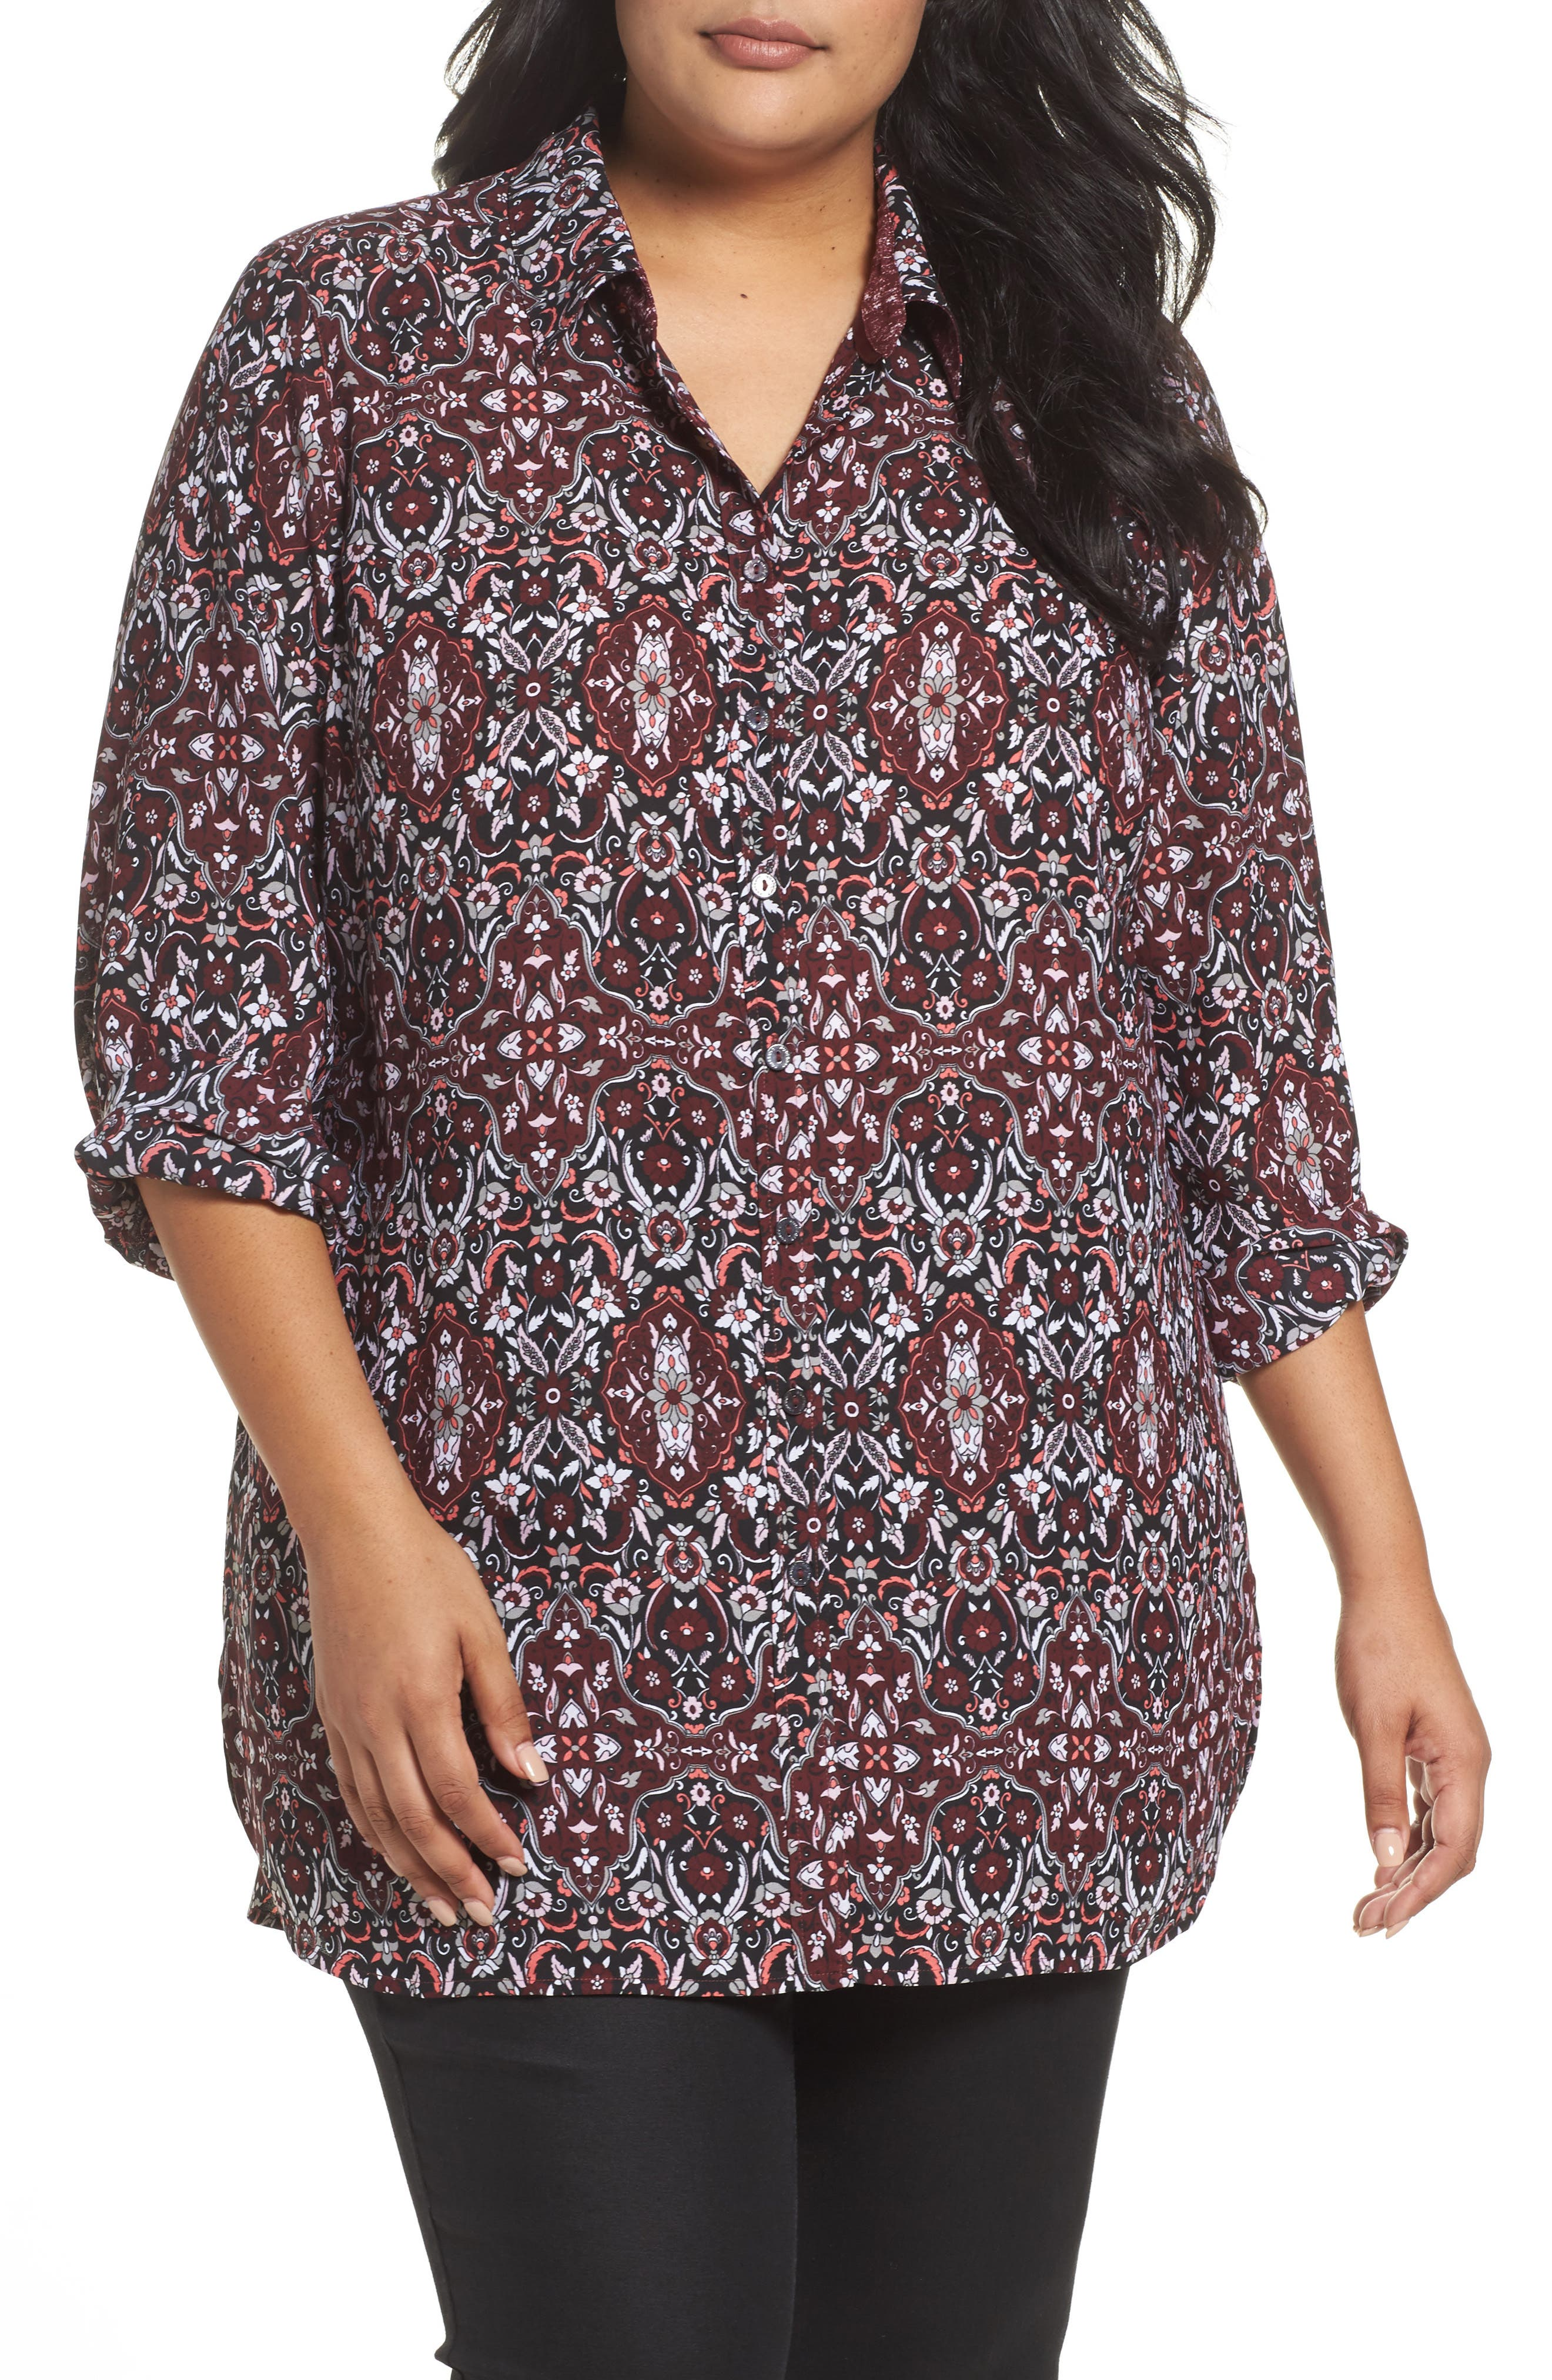 Main Image - Foxcroft Jade Heirloom Paisley Shirt (Plus Size)